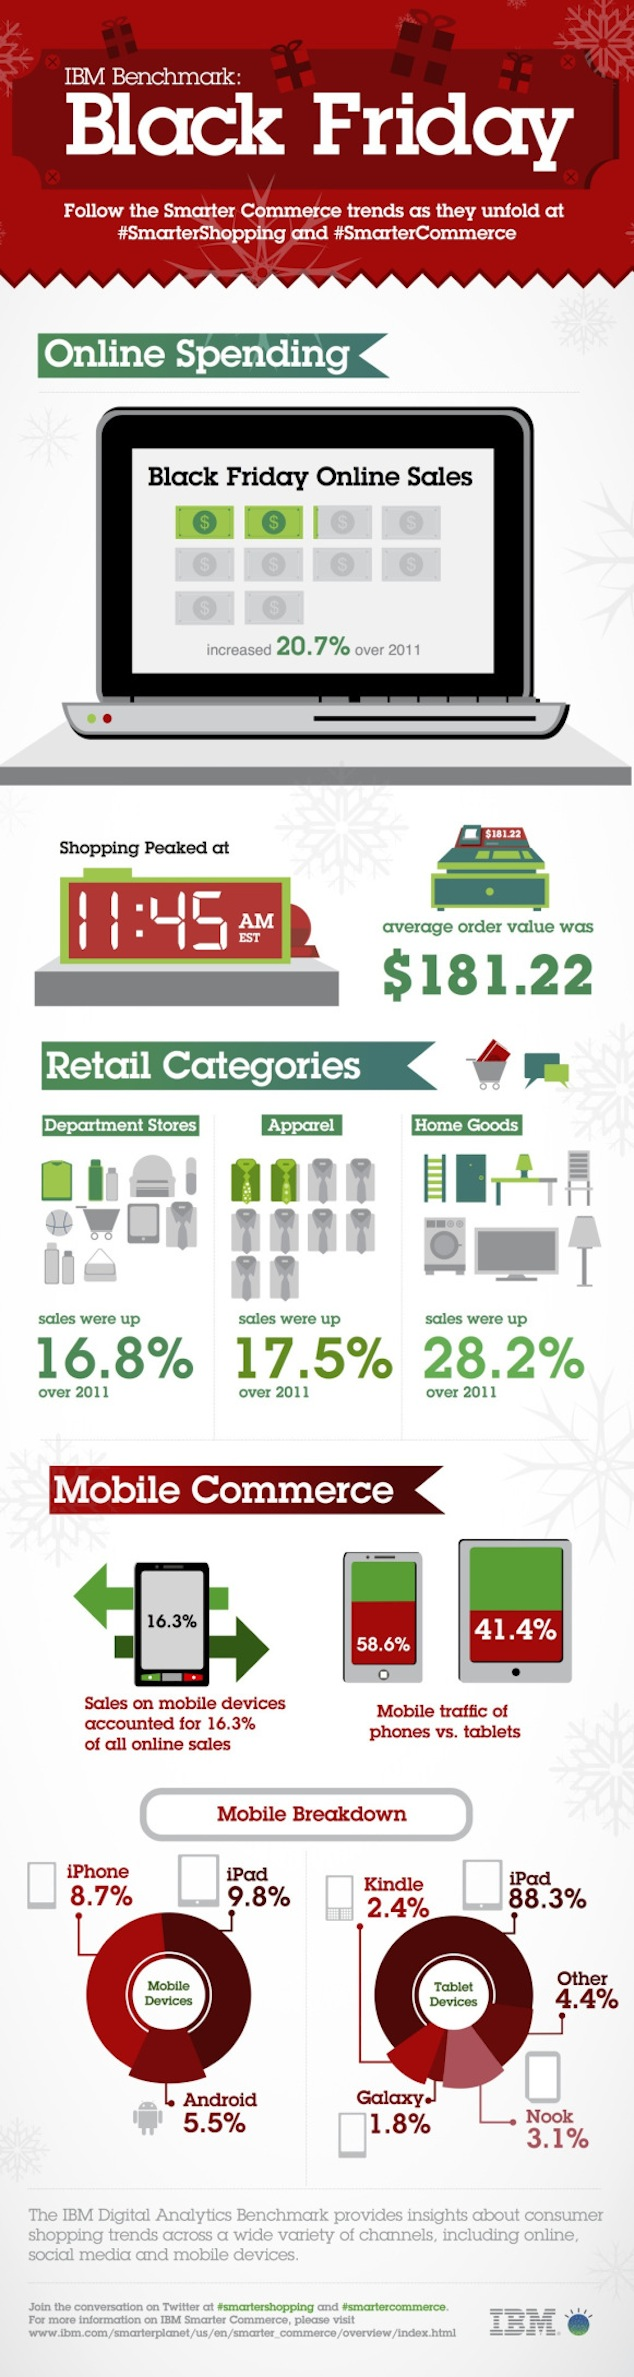 Apple's iPad Is Top 2012 Black Friday Shopping Tablet [INFOGRAPHIC]